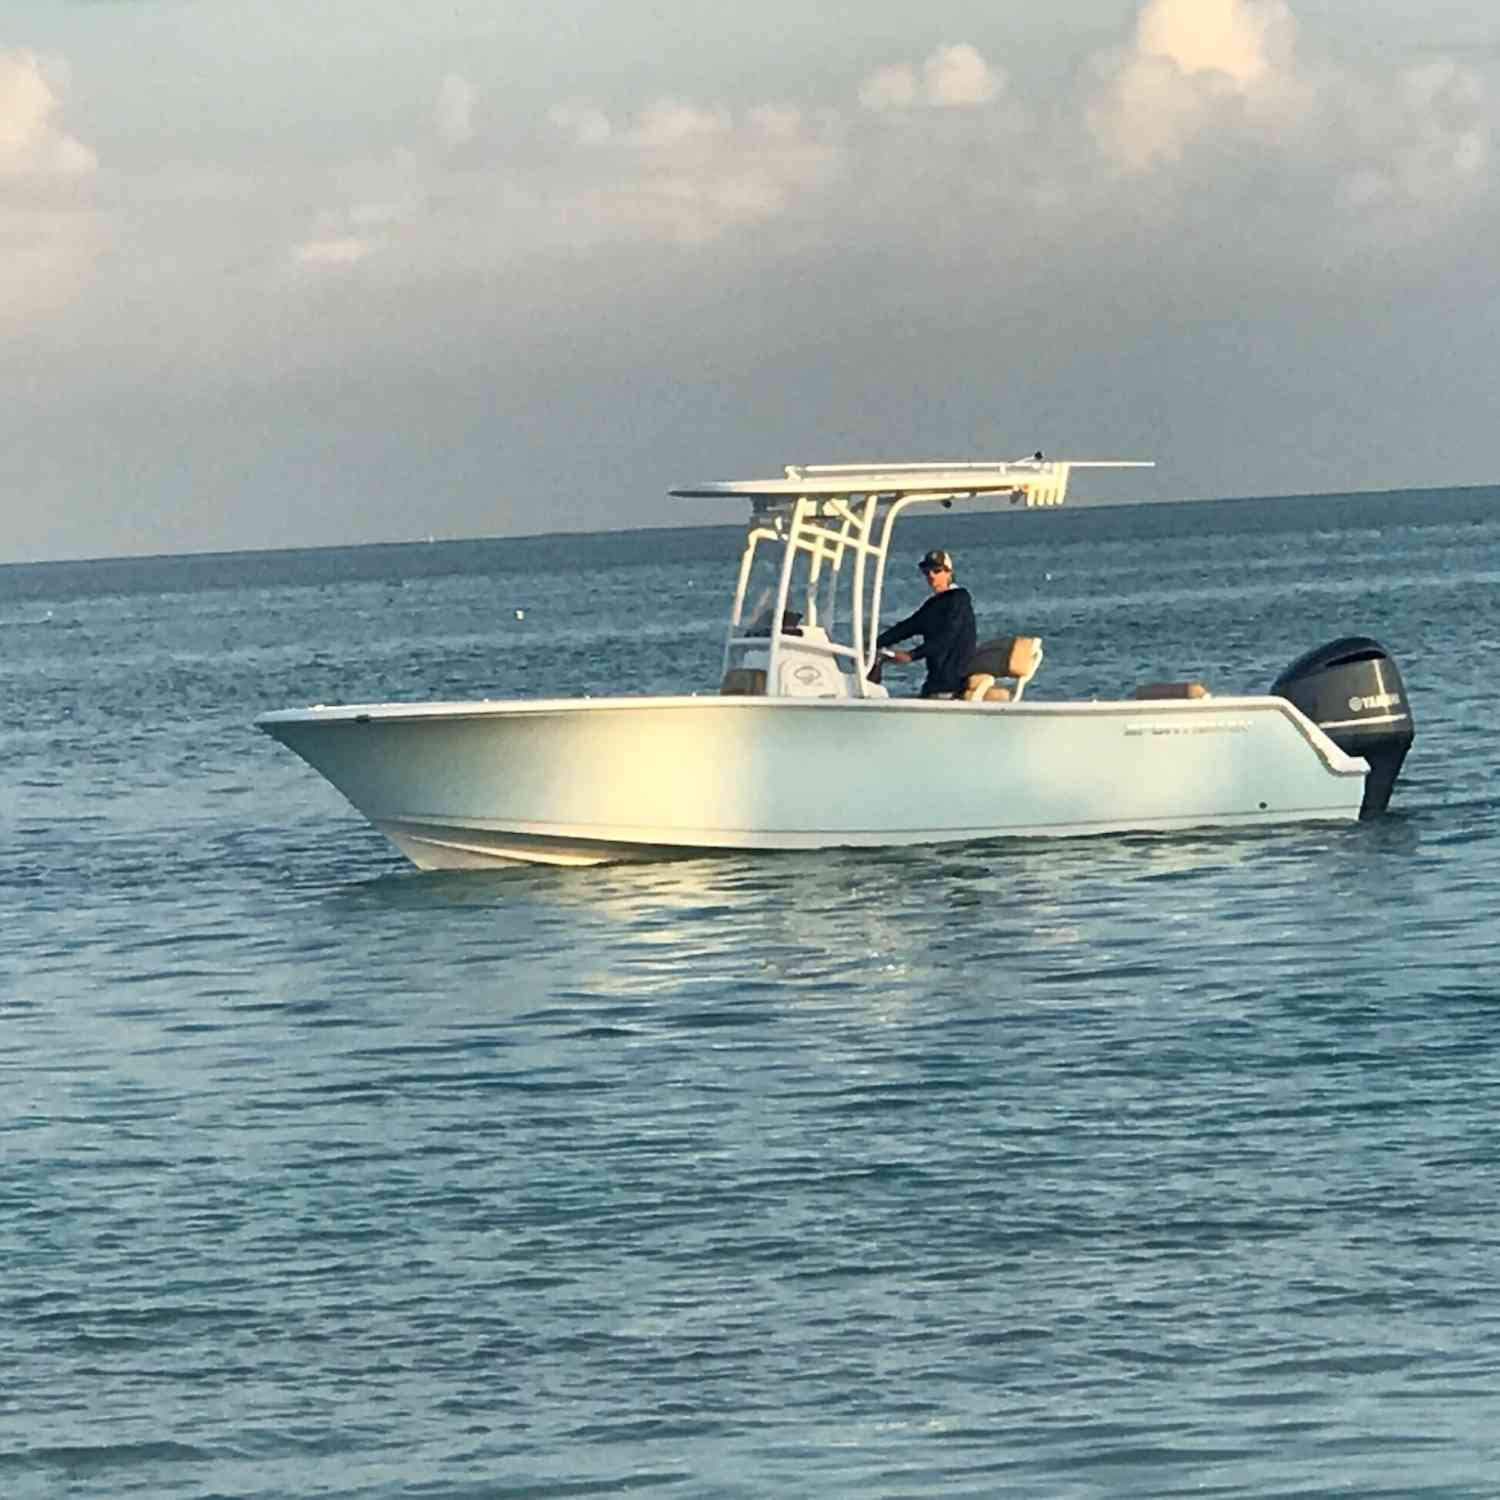 Title: Crusing - On board their Sportsman Open 232 Center Console - Location: Florida. Participating in the Photo Contest #SportsmanOctober2019